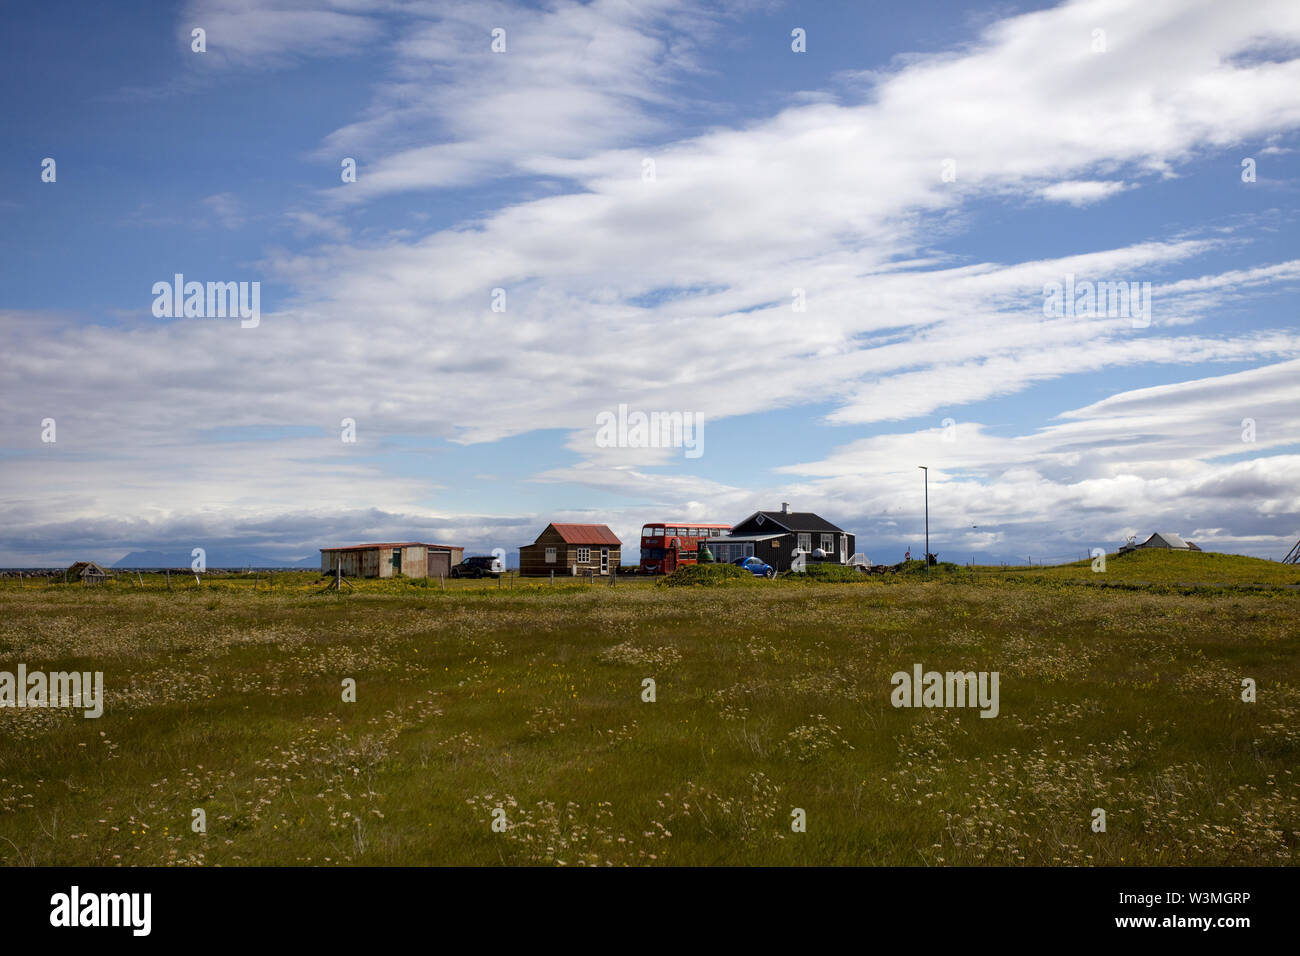 Small holding with red london bus in Sandgerdi south west iceland - Stock Image